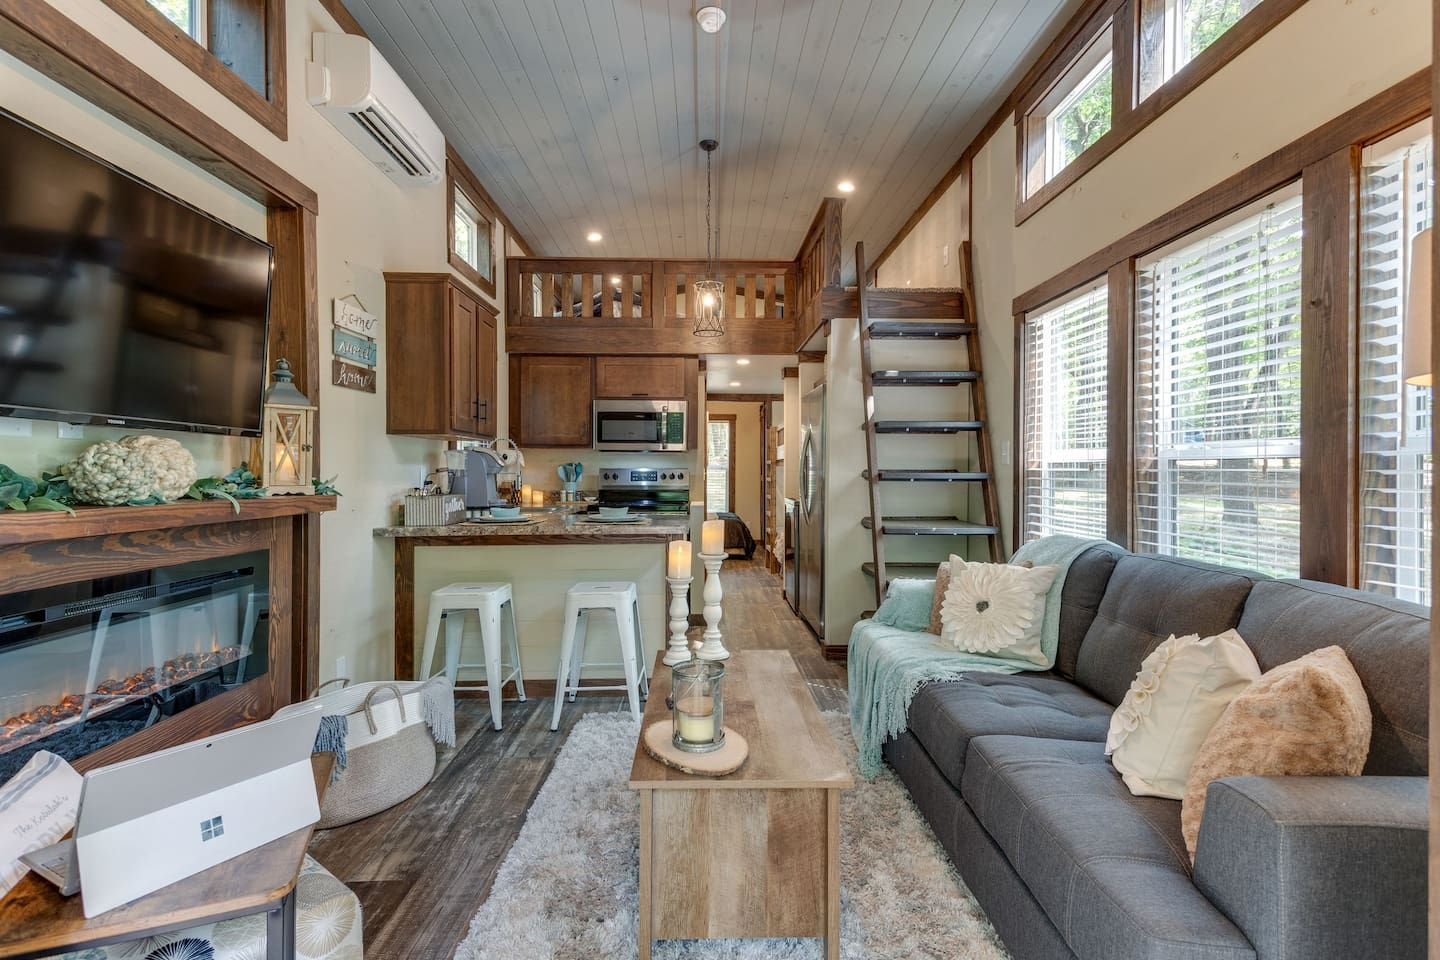 Rent a Tiny Home in Monteagle TN